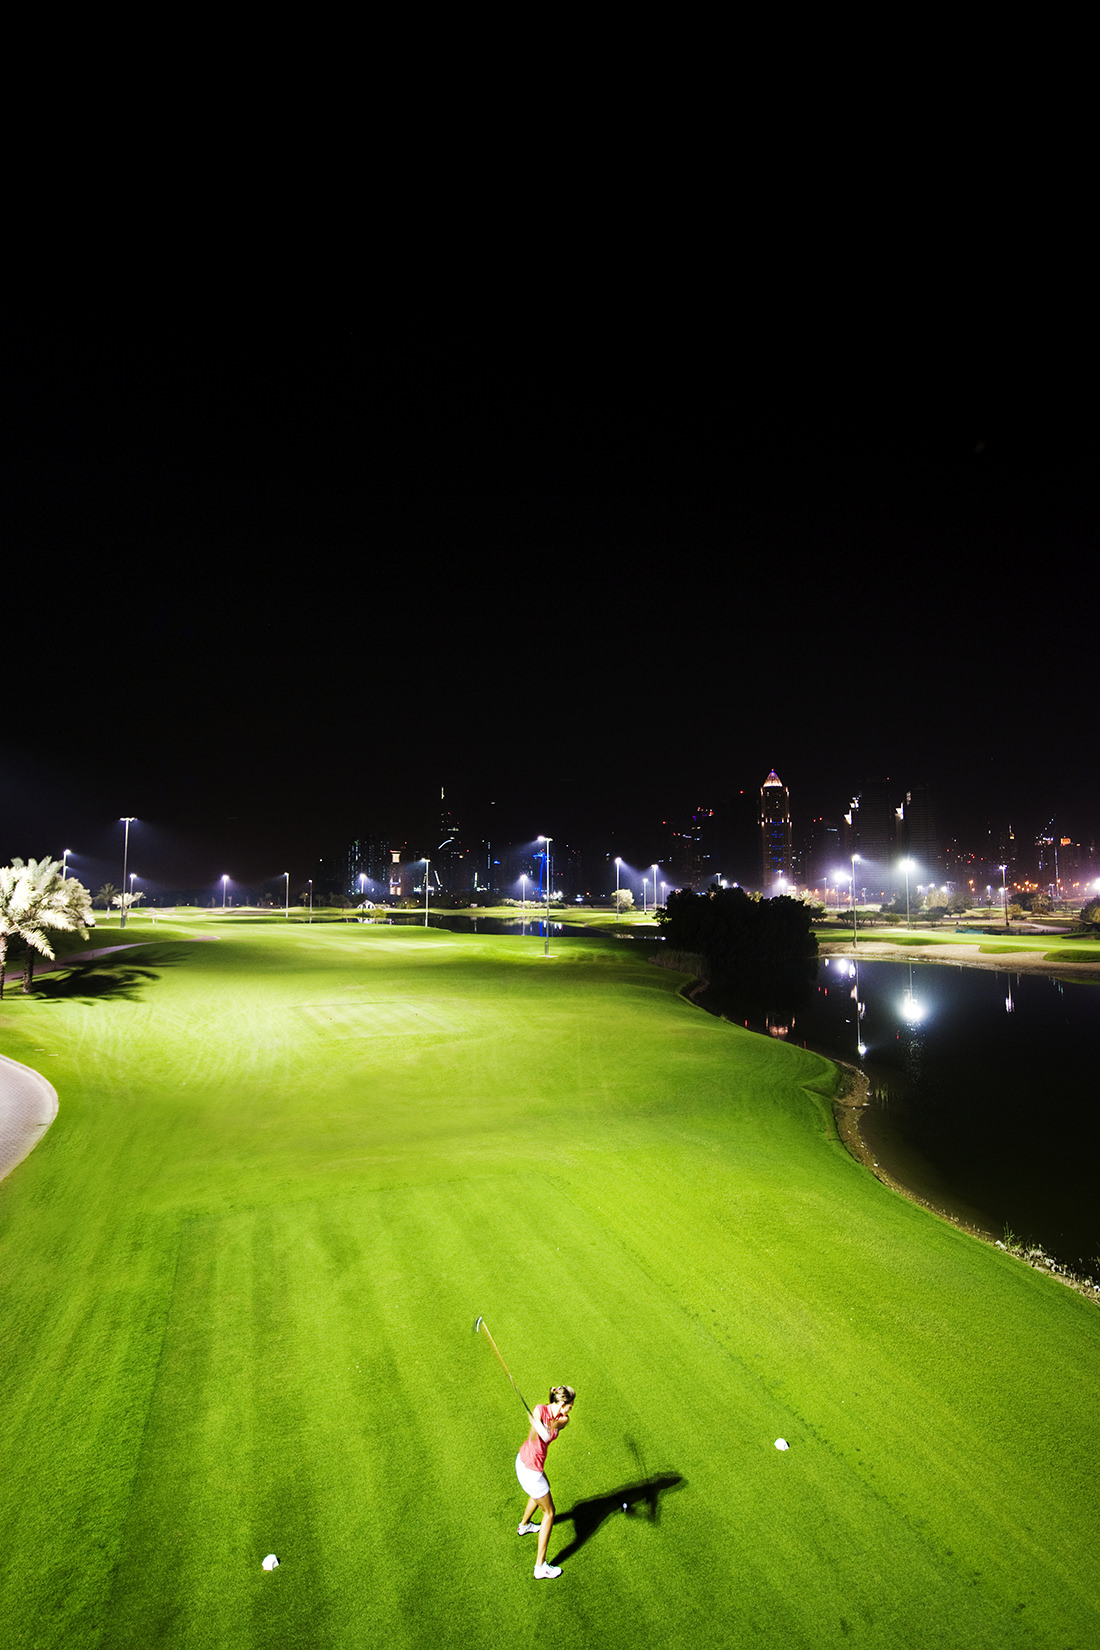 EMIRATES GOLF CLUB FALDO COURSE - godesto.com